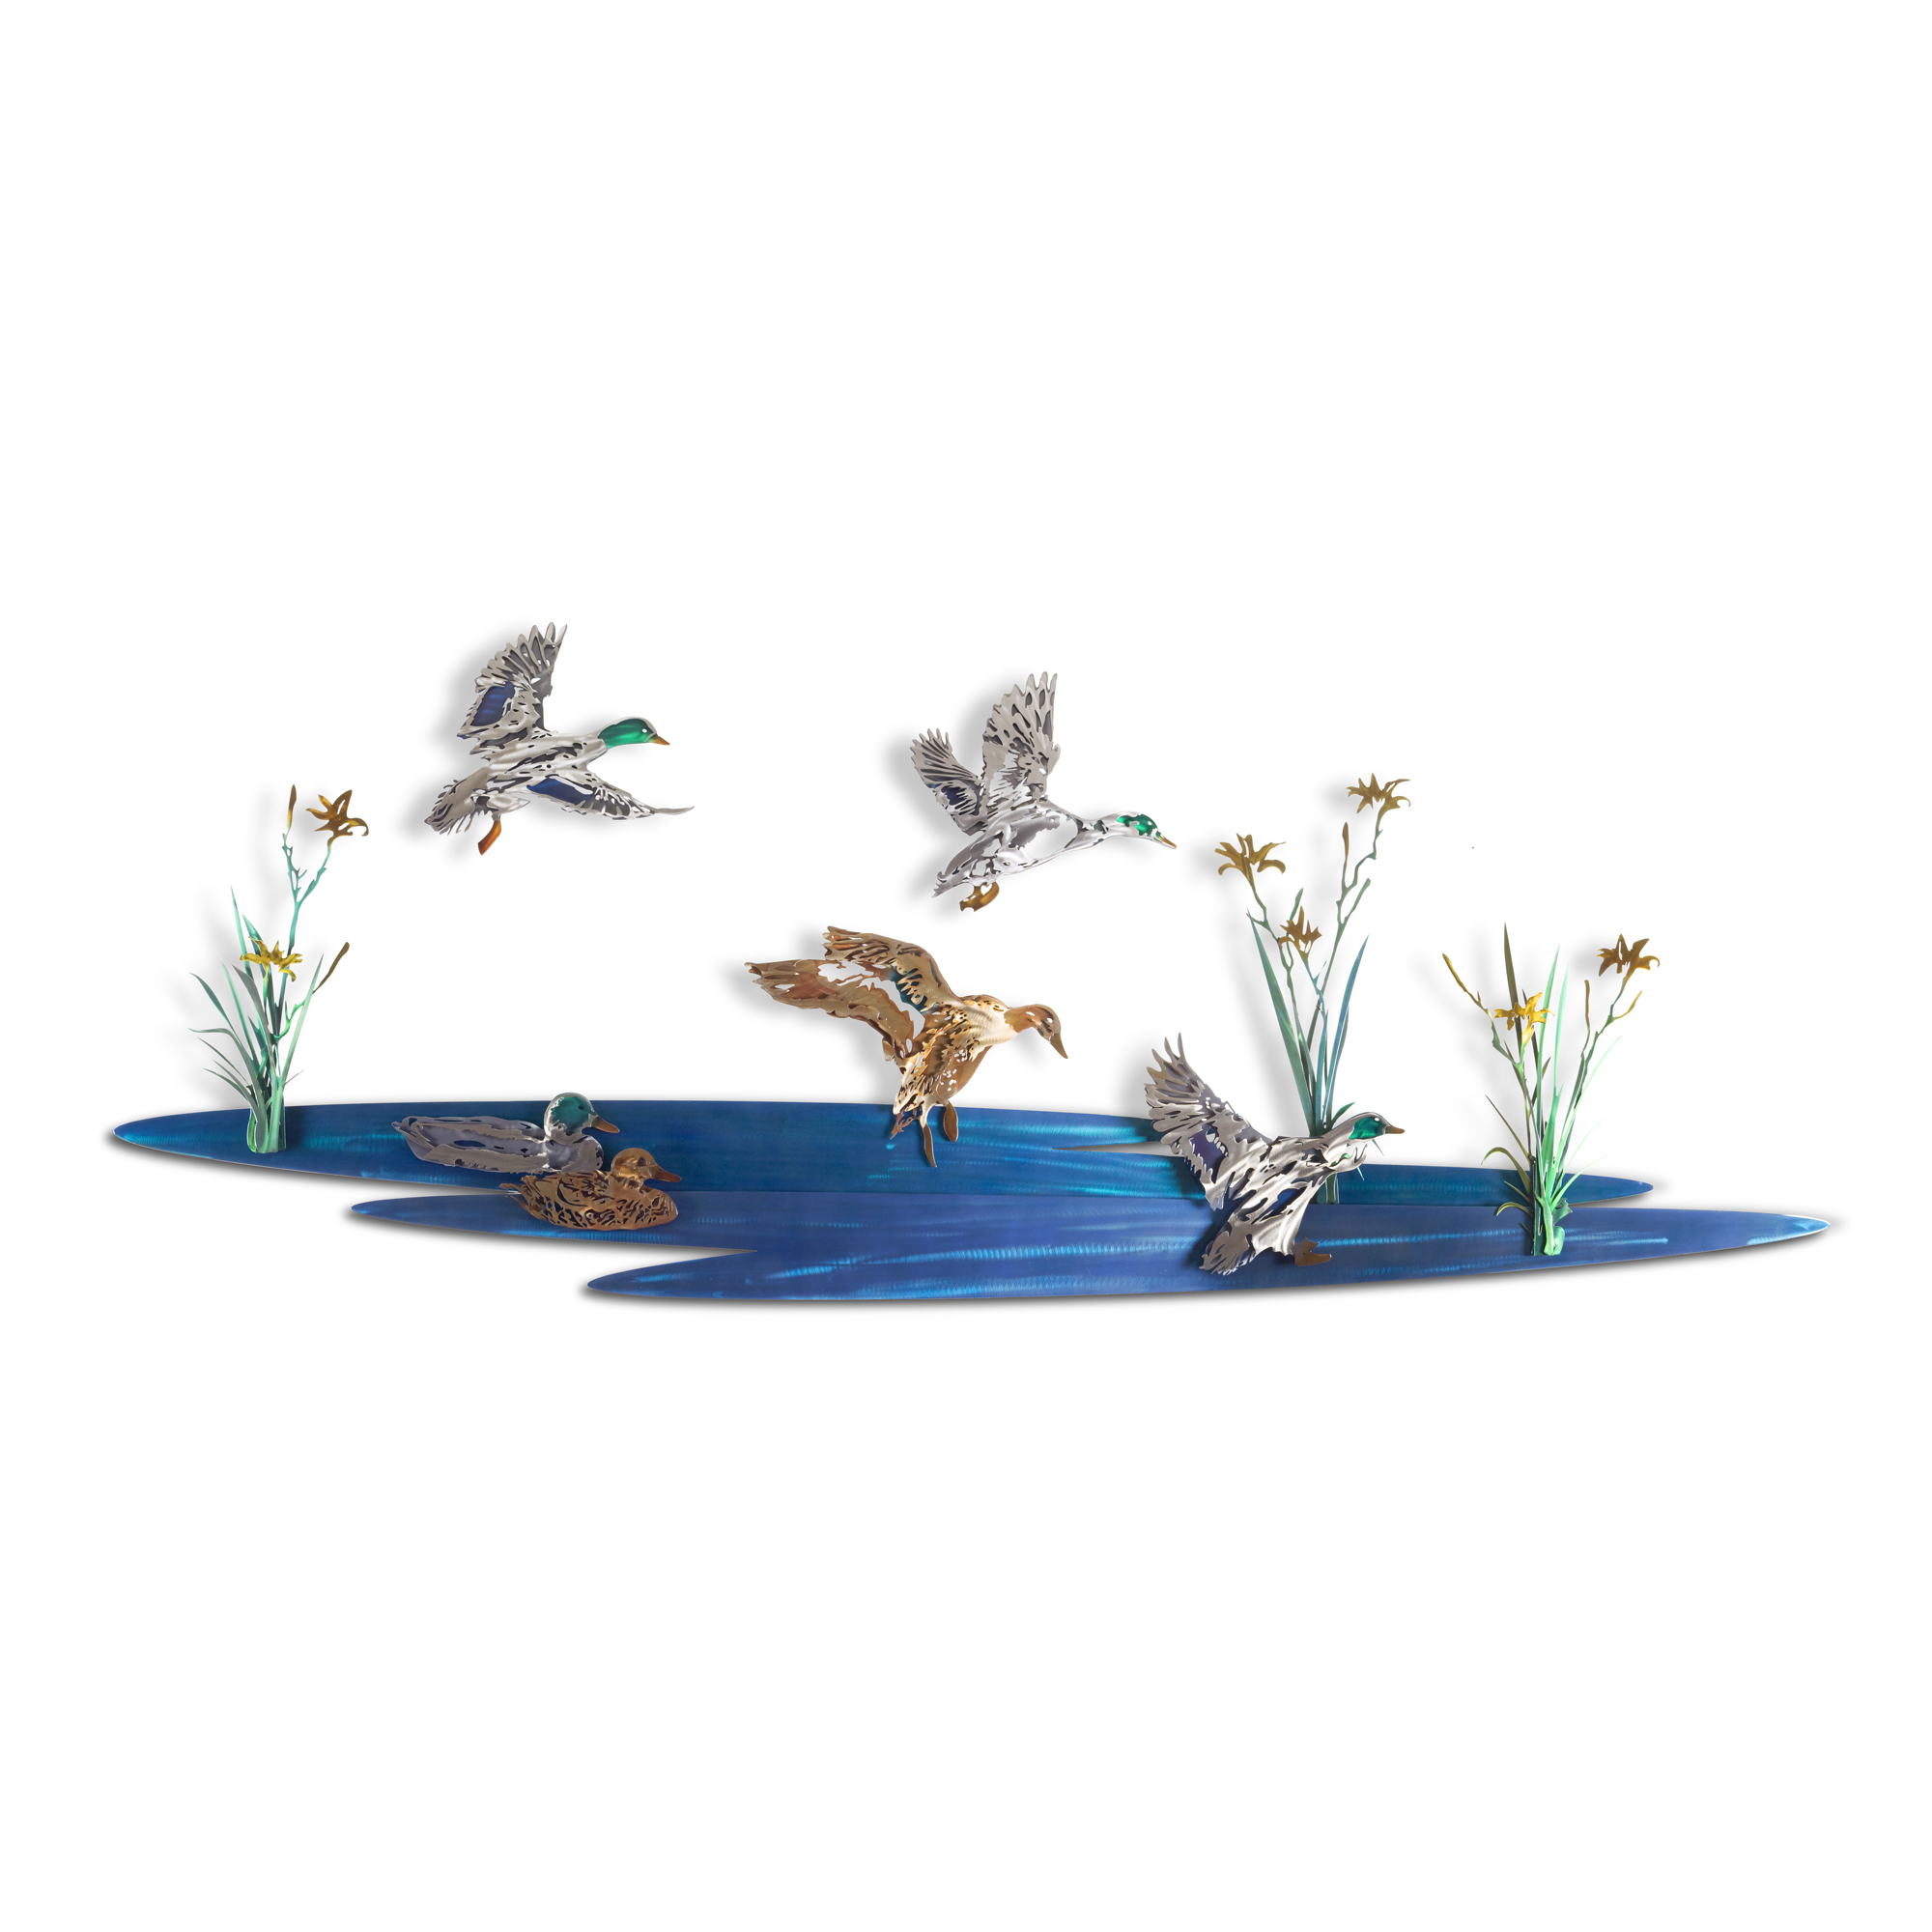 Mallard Pond Mural - Exquisite Multicolored Metal Artwork for the Home Instructions